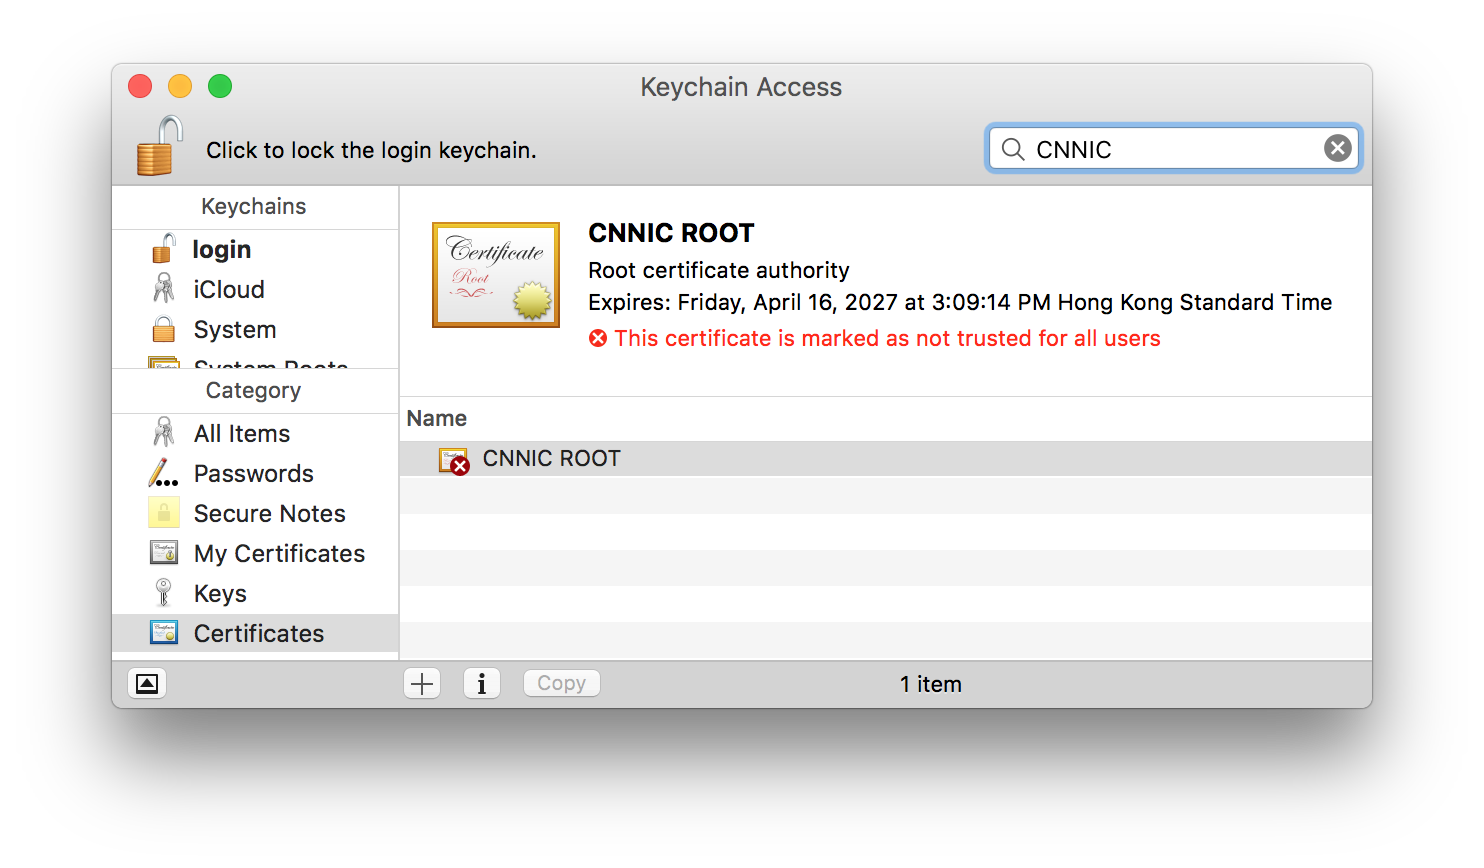 Don't trust CNNIC's root certificate